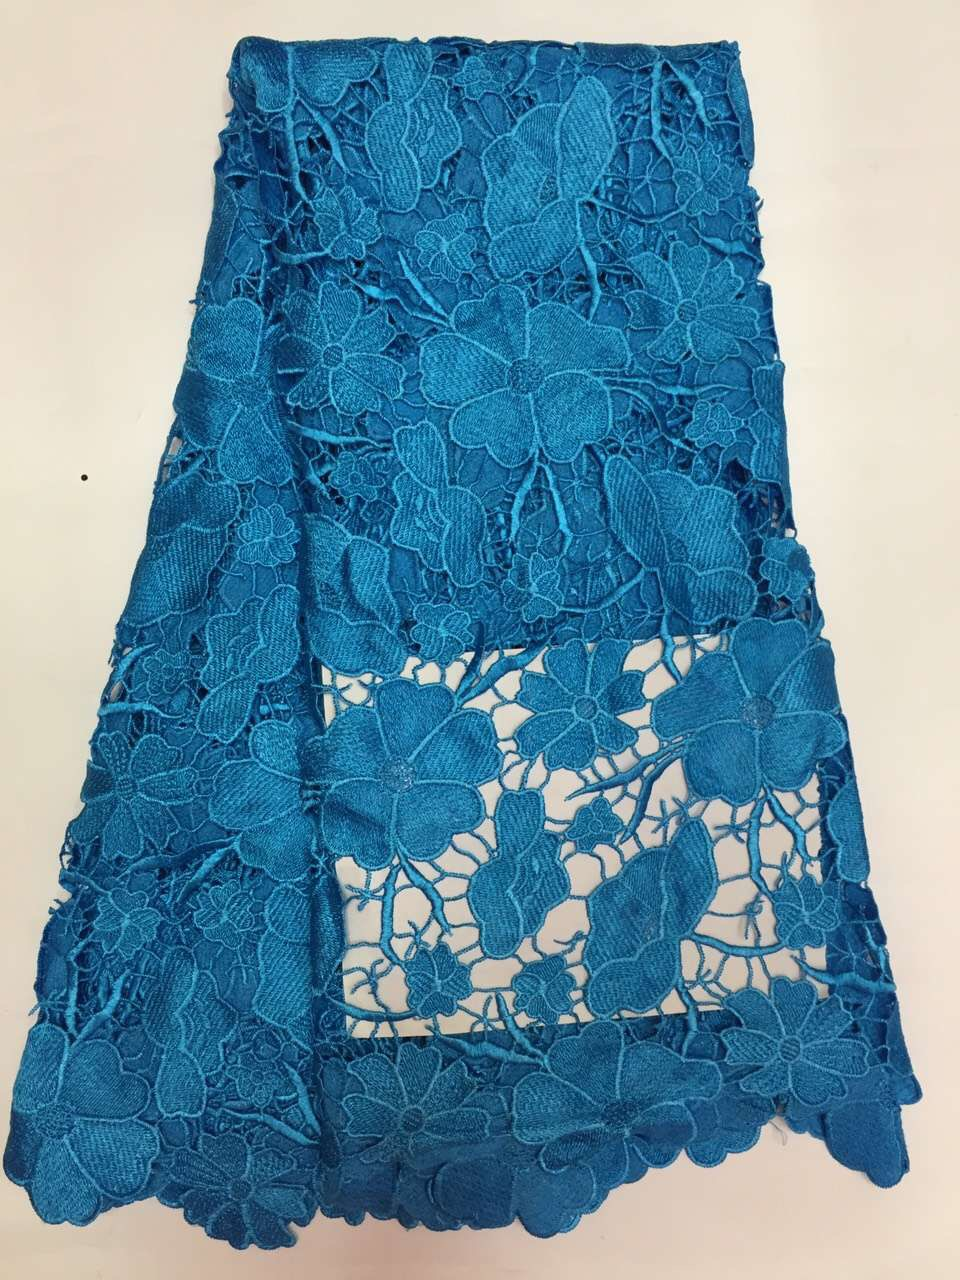 Hot High Quality  African Water soluble lace  Guipure Cord Lace - Arts, Crafts and Sewing - Photo 5